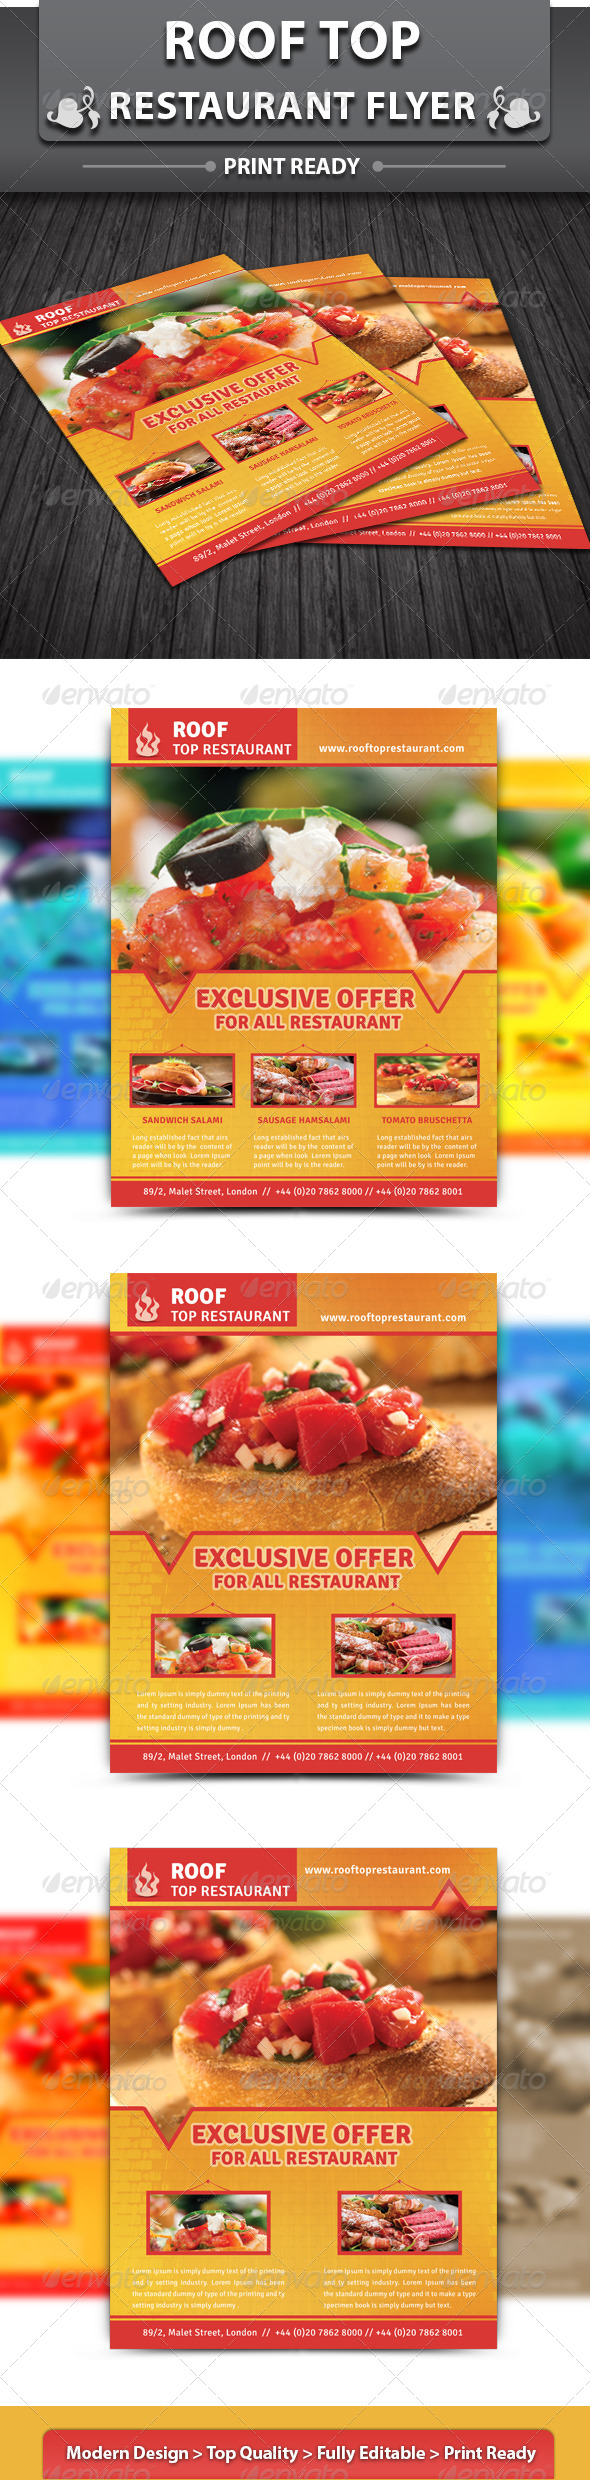 GraphicRiver Roof Top Restaurant Flyer 4758350